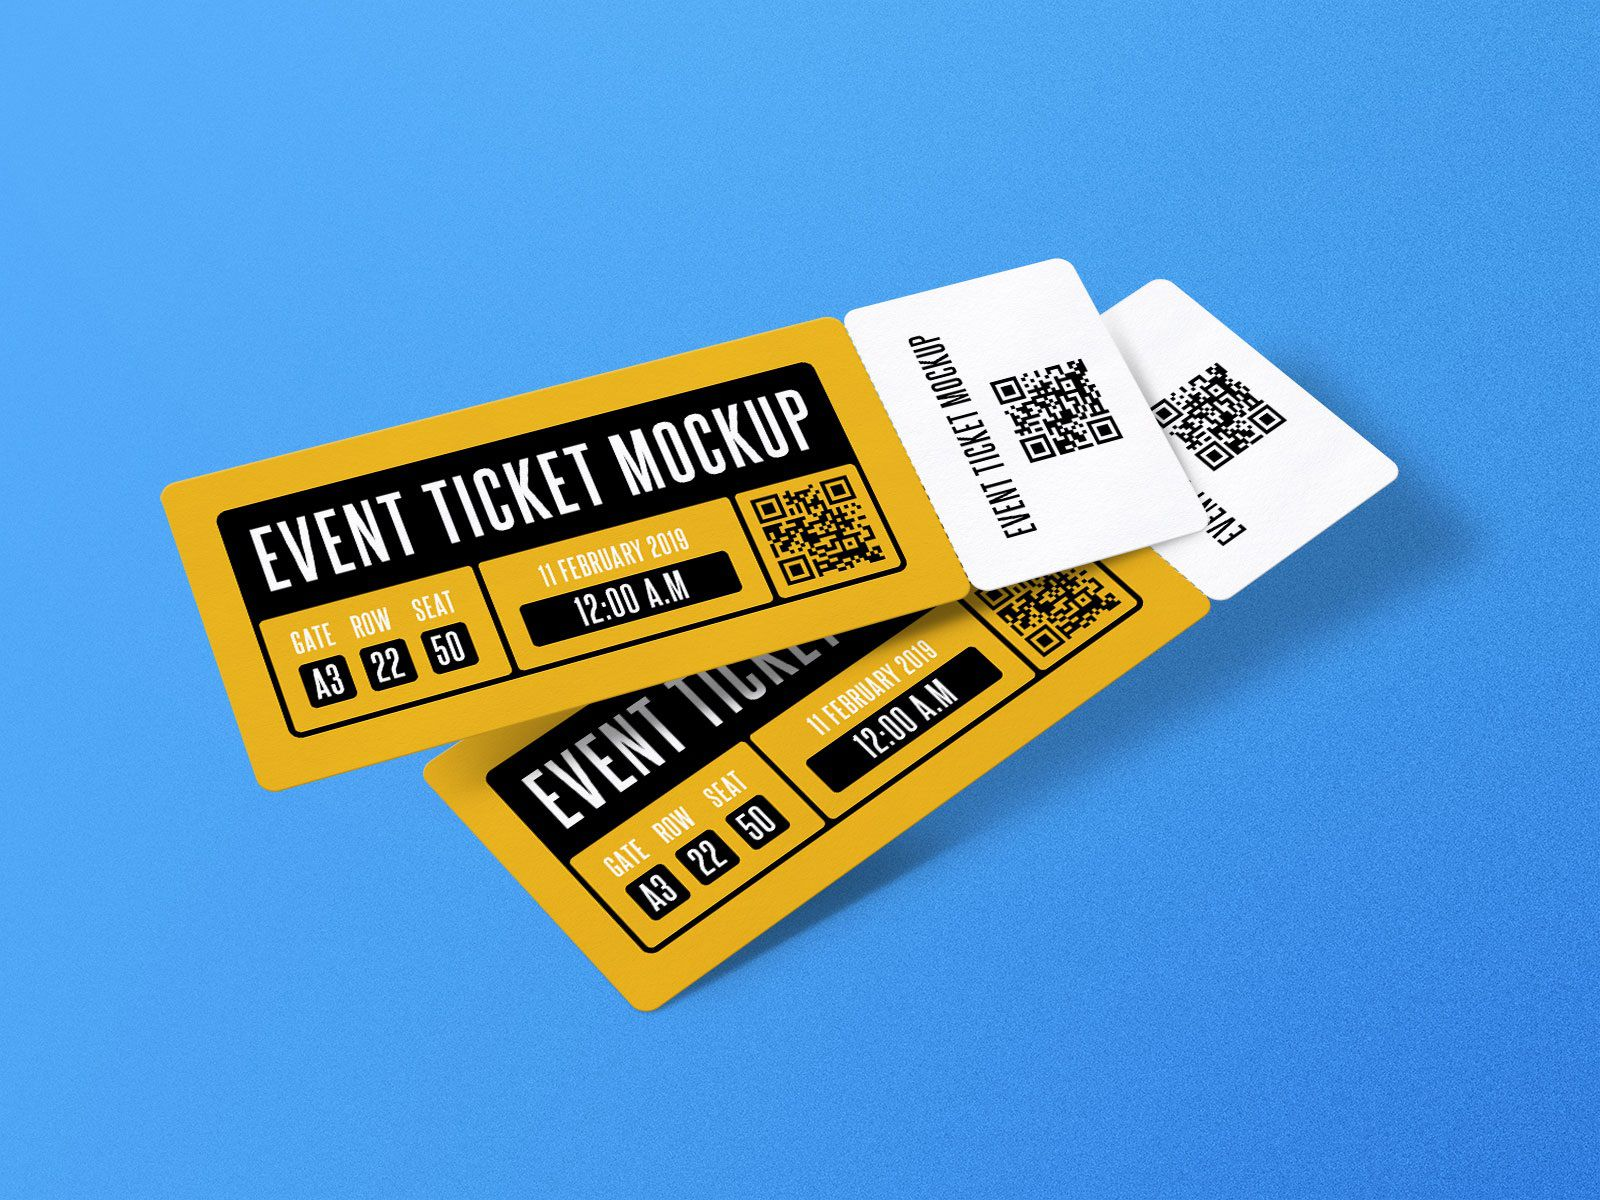 007 Shocking Event Ticket Template Photoshop High Def  Design Psd Free DownloadFull